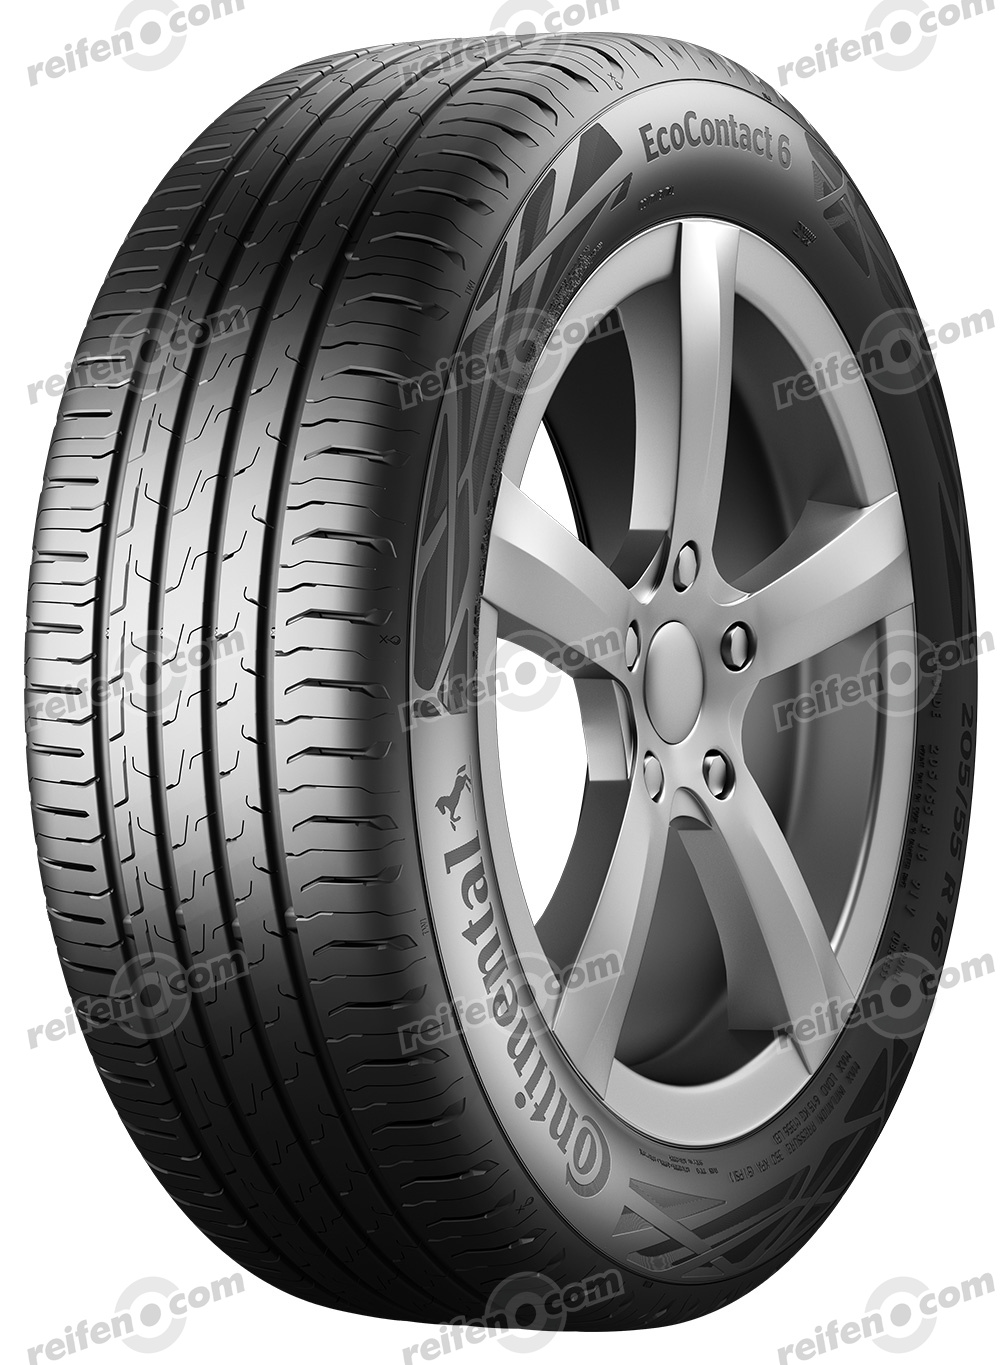 185/65 R15 88T EcoContact 6  EcoContact 6